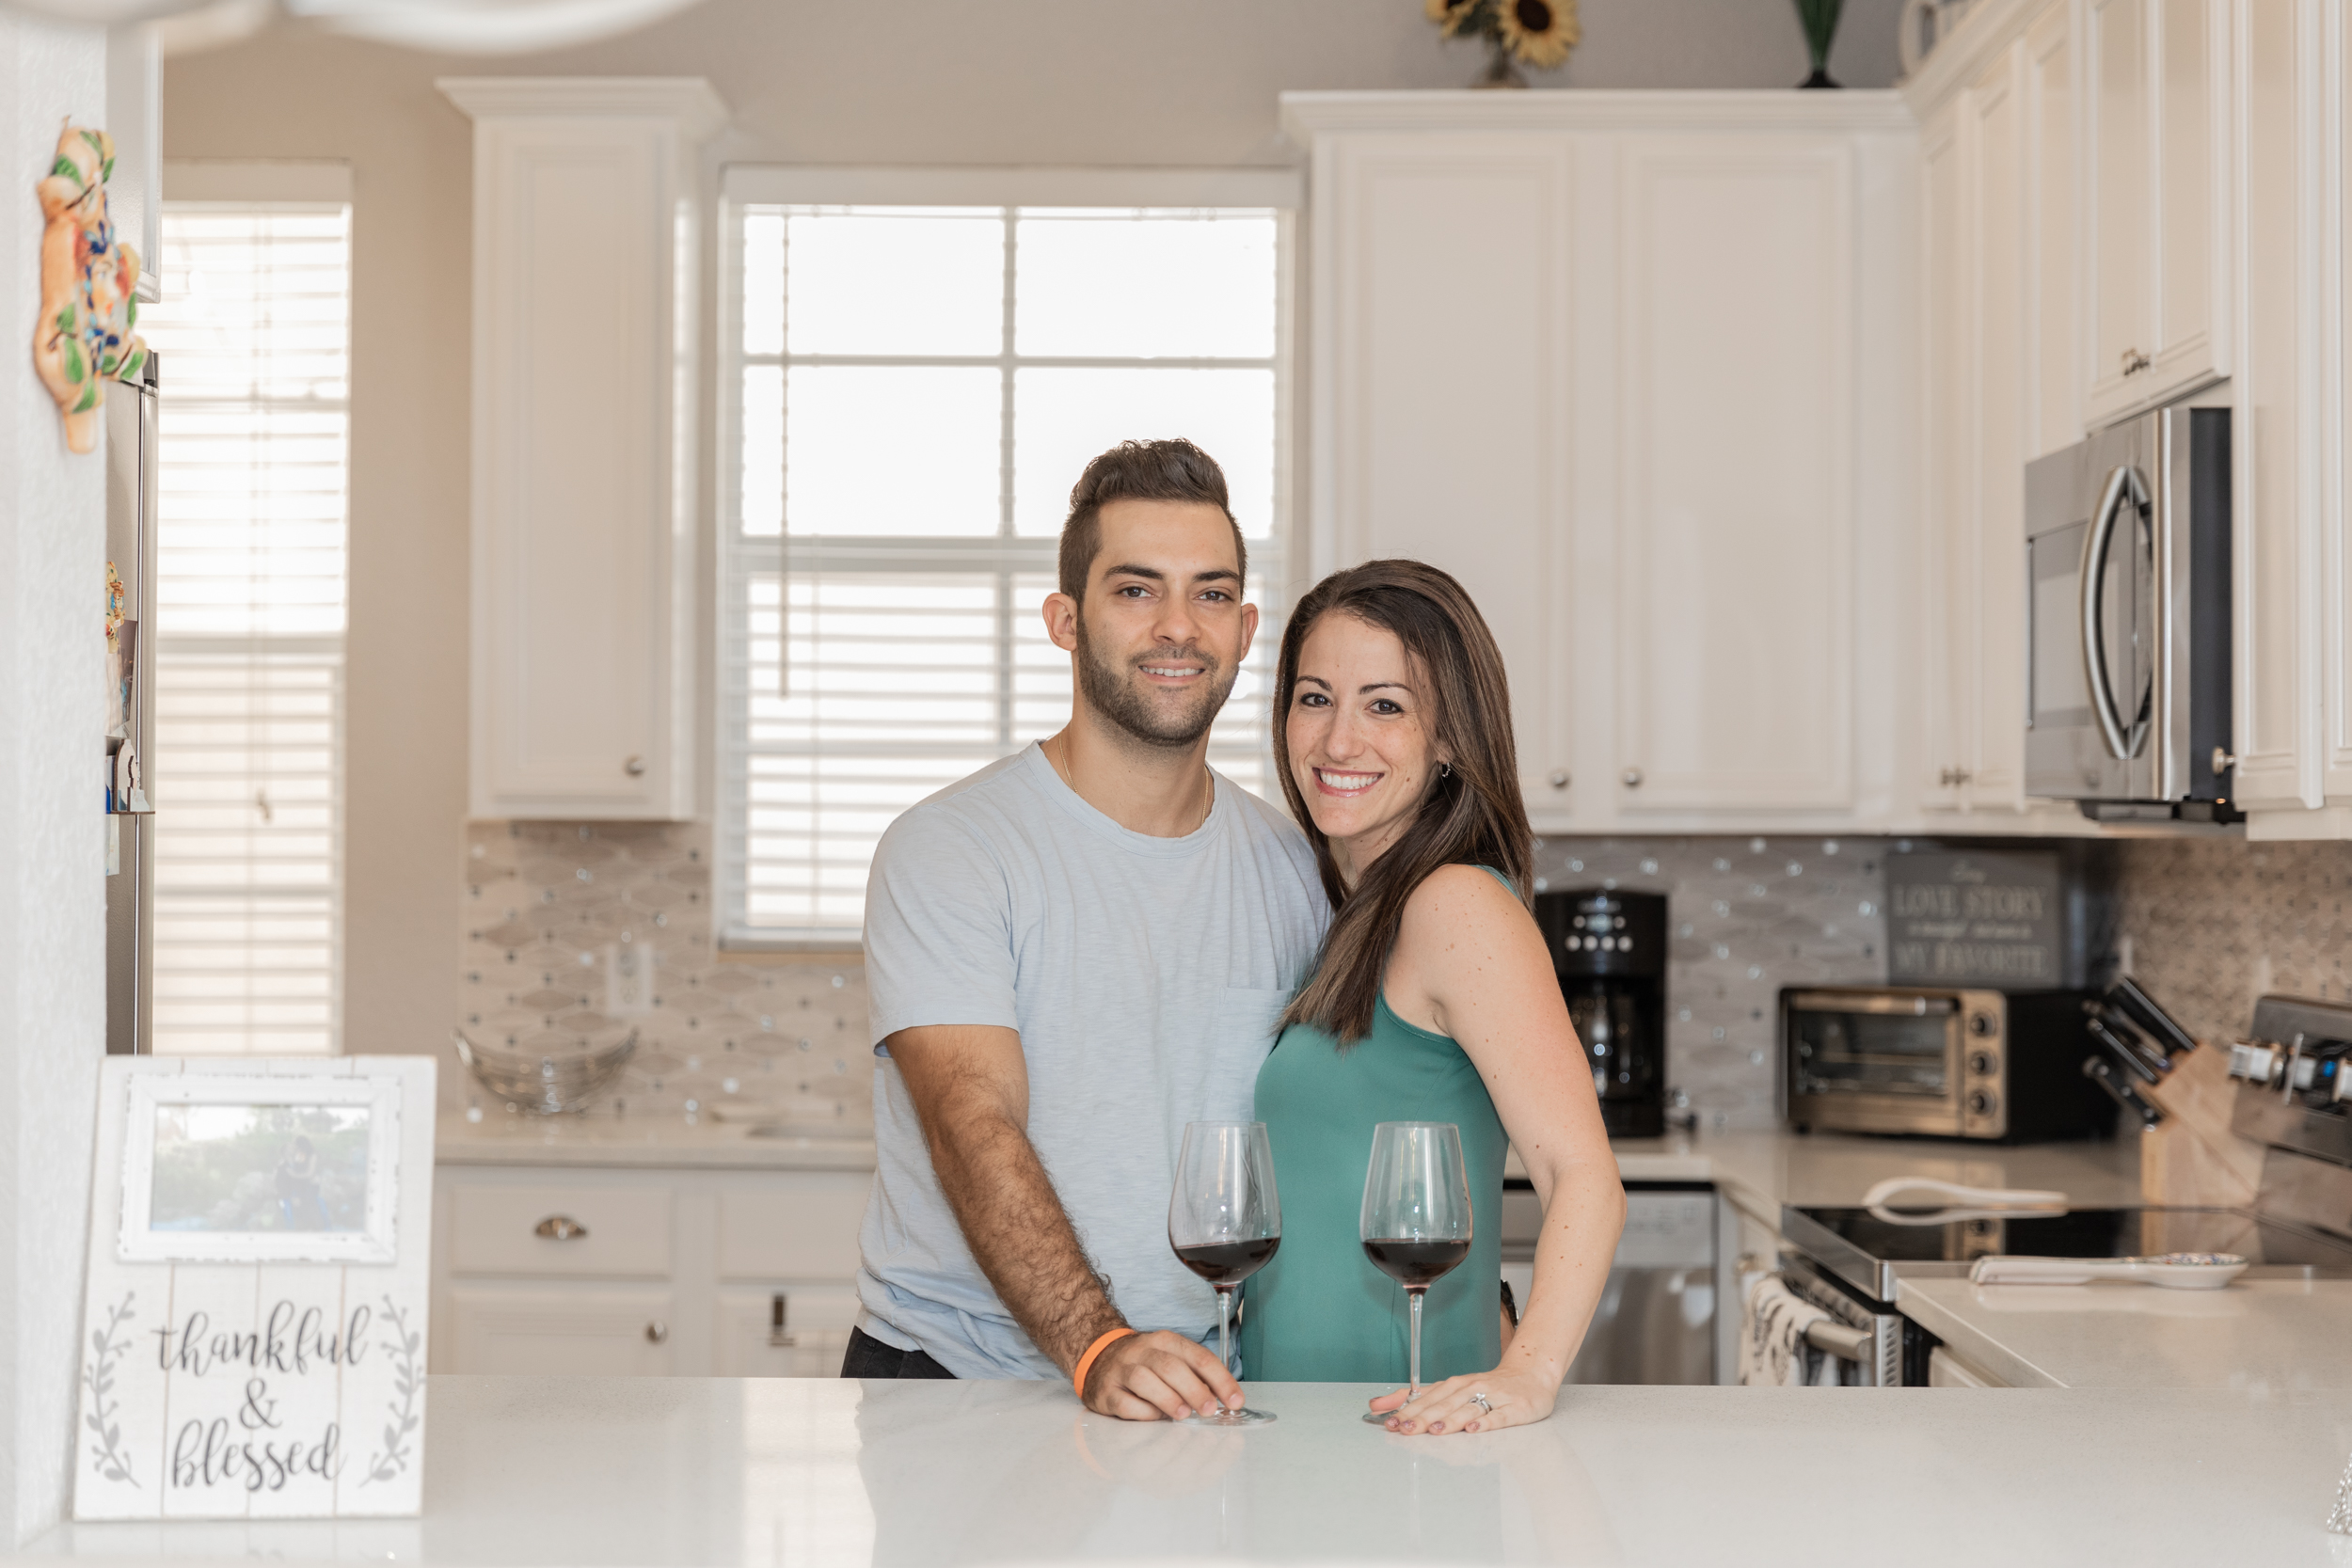 Meet the Maslows - Anthony & Valerie are one of the most selfless couples you will ever meet. They both have made it their mission to improve the lives of others, whether its through their professional careers or their philanthropic endeavors.